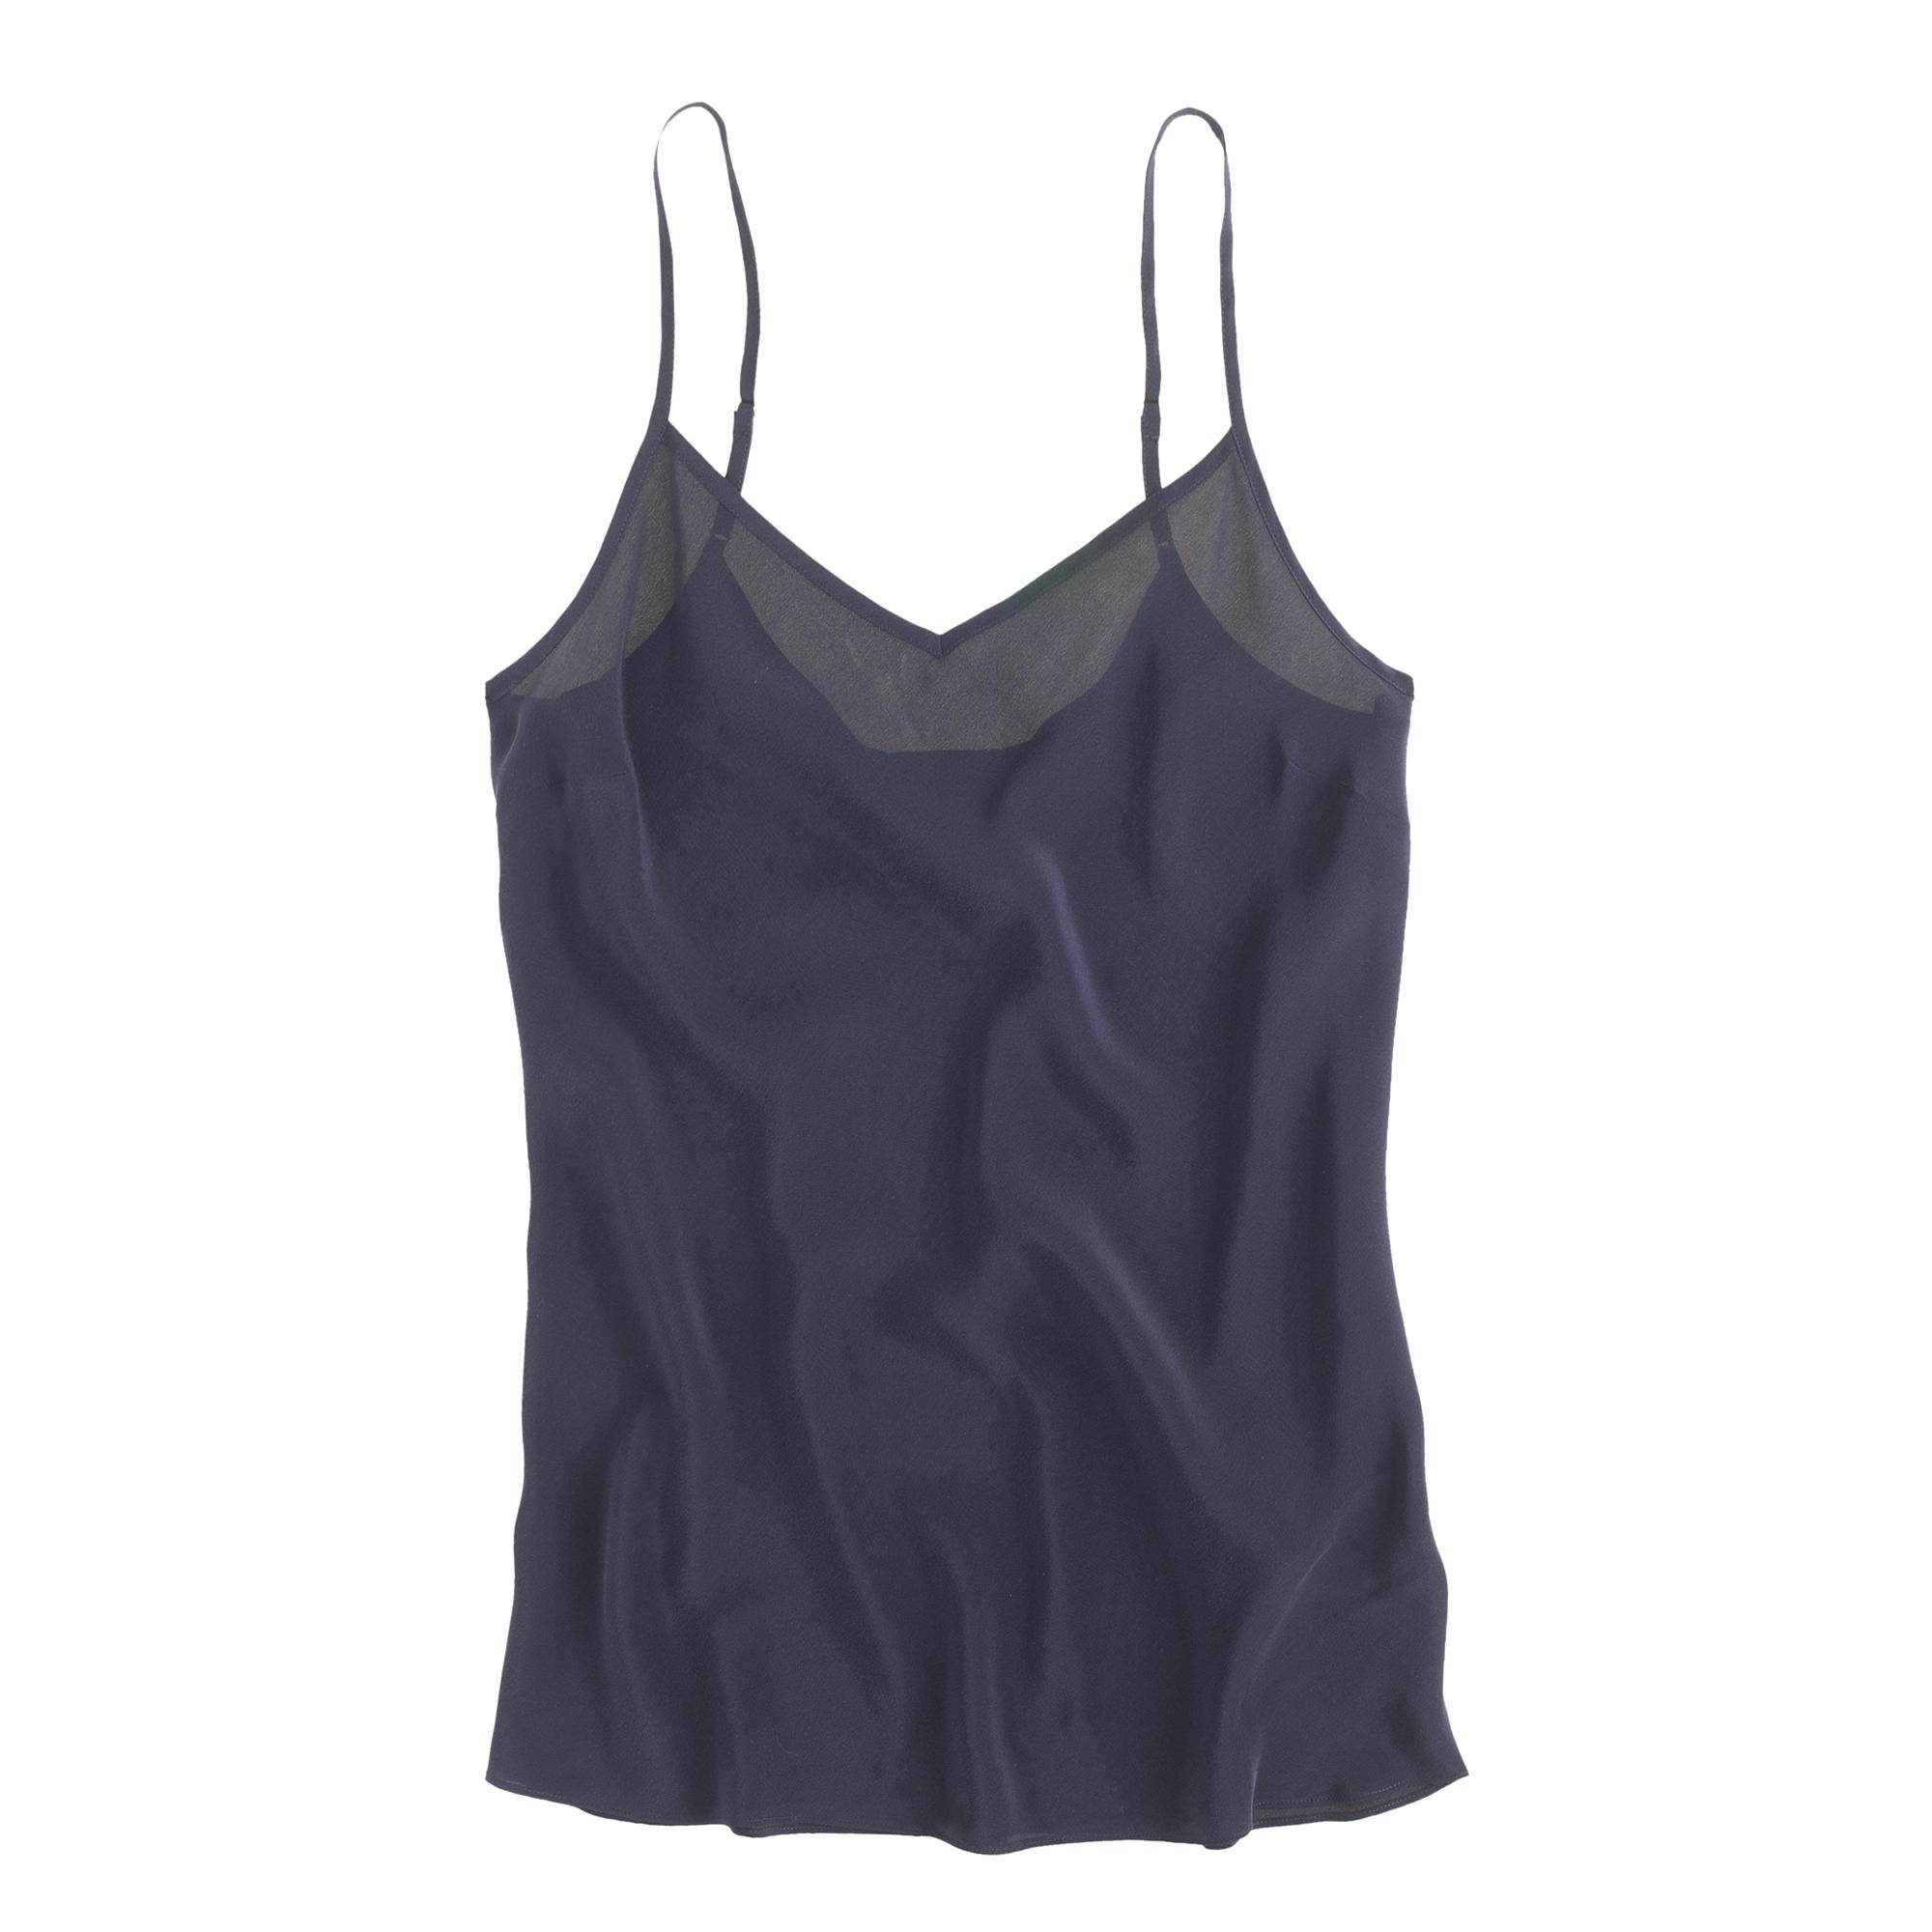 Find great deals on eBay for navy blue silk camisole. Shop with confidence.